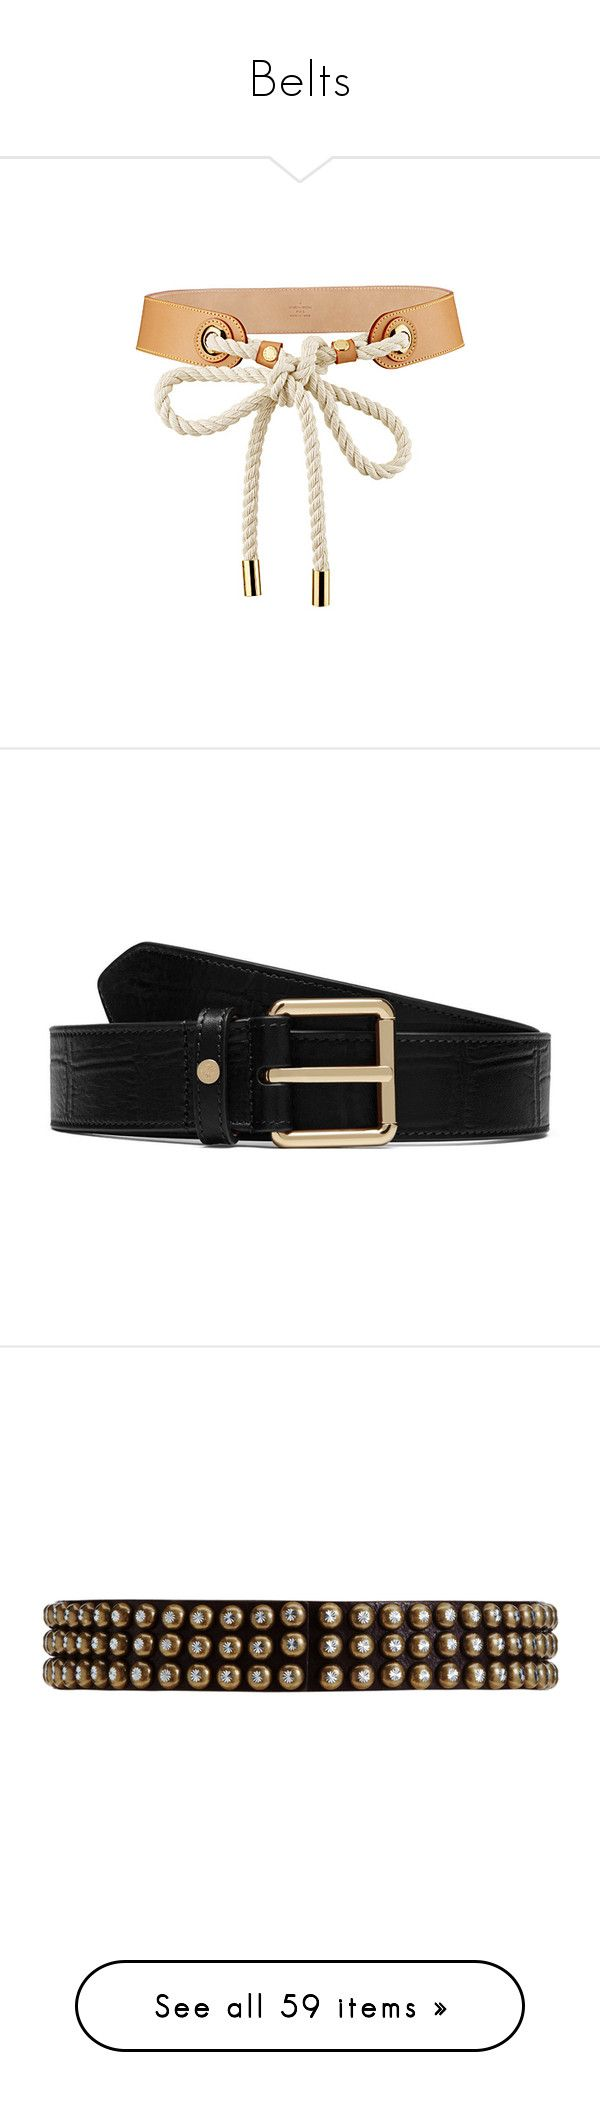 """Belts"" by yihansong ❤ liked on Polyvore featuring accessories, belts, jewelry, necklaces, louis vuitton, louis vuitton belt, black, leather belt, leather buckle belt and buckle belt"